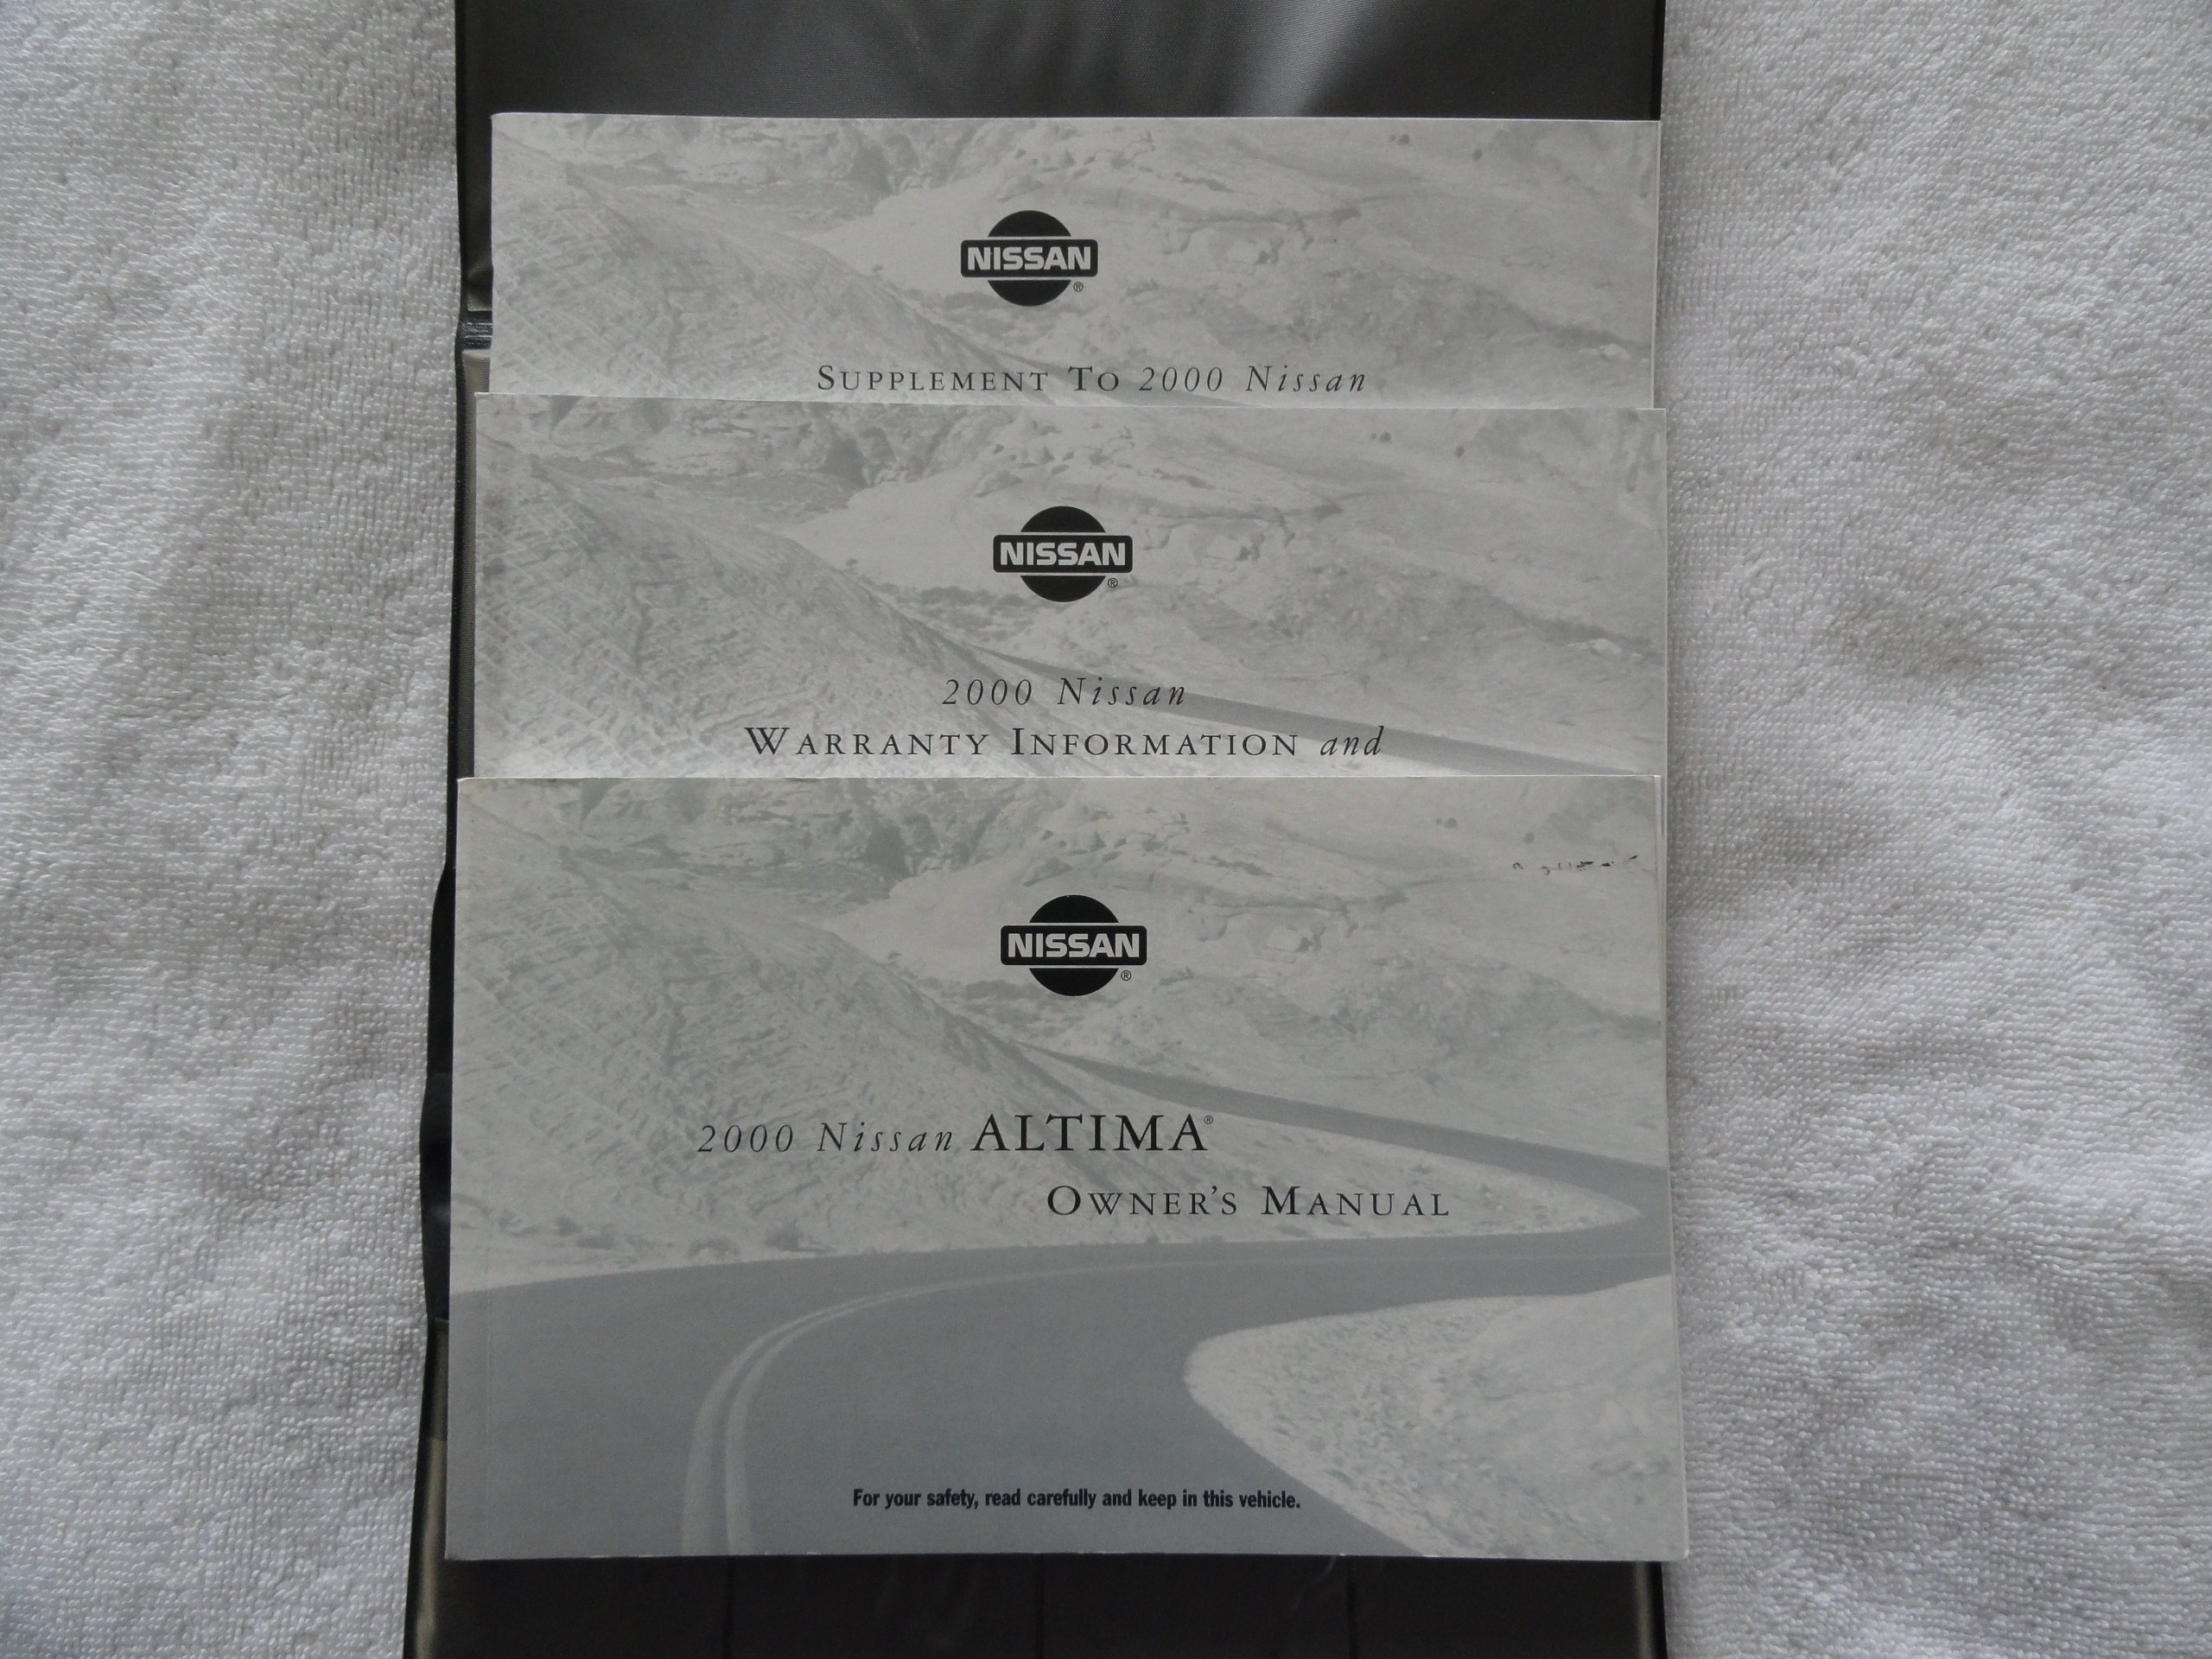 2000 nissan altima owners manual nissan amazon com books rh amazon com 2015 Nissan Altima 2004 Nissan Altima